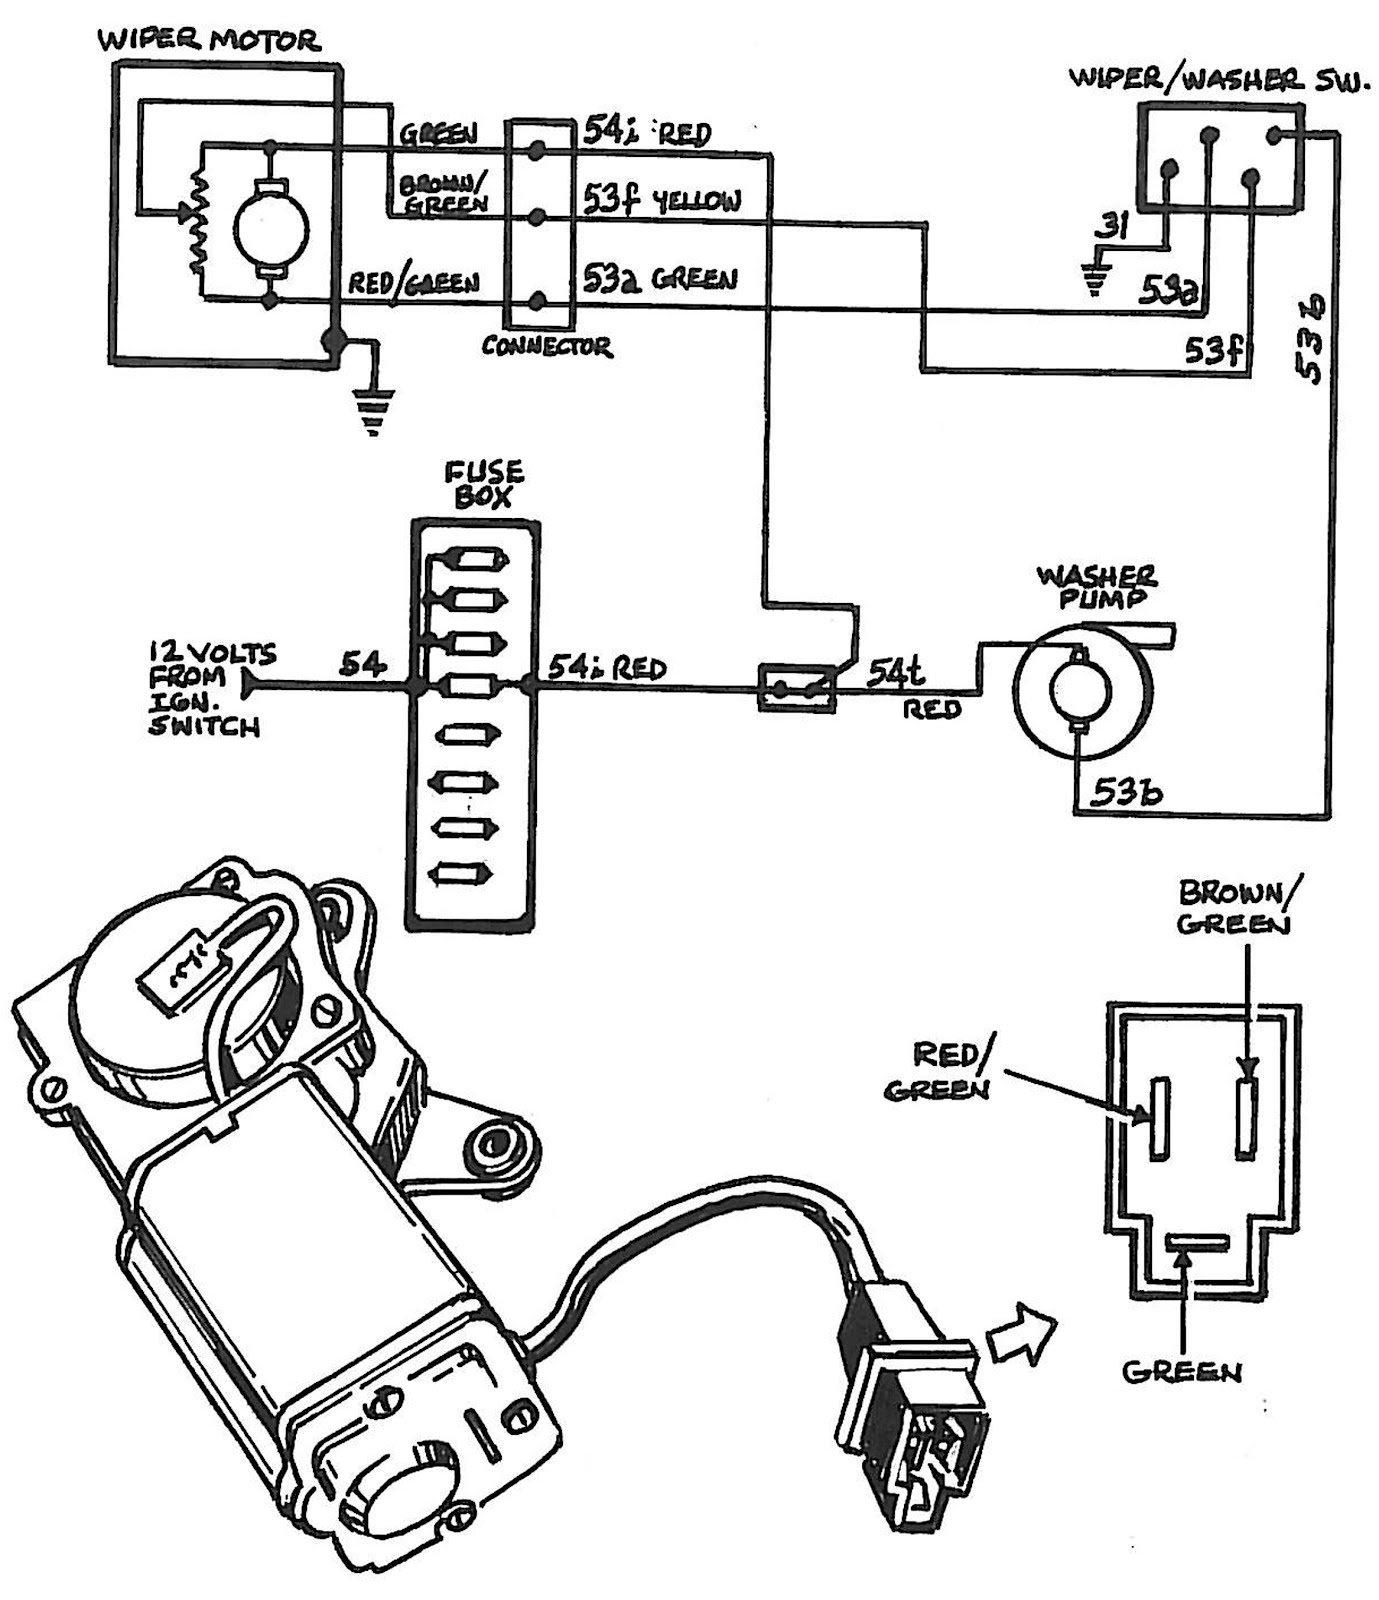 Chevy Blazer Wiring Diagram Moreover 1997 Tahoe 2 Starting Know Fuse Box In A 1998 S10 2l Chevrolet Wiper Get Free Image About